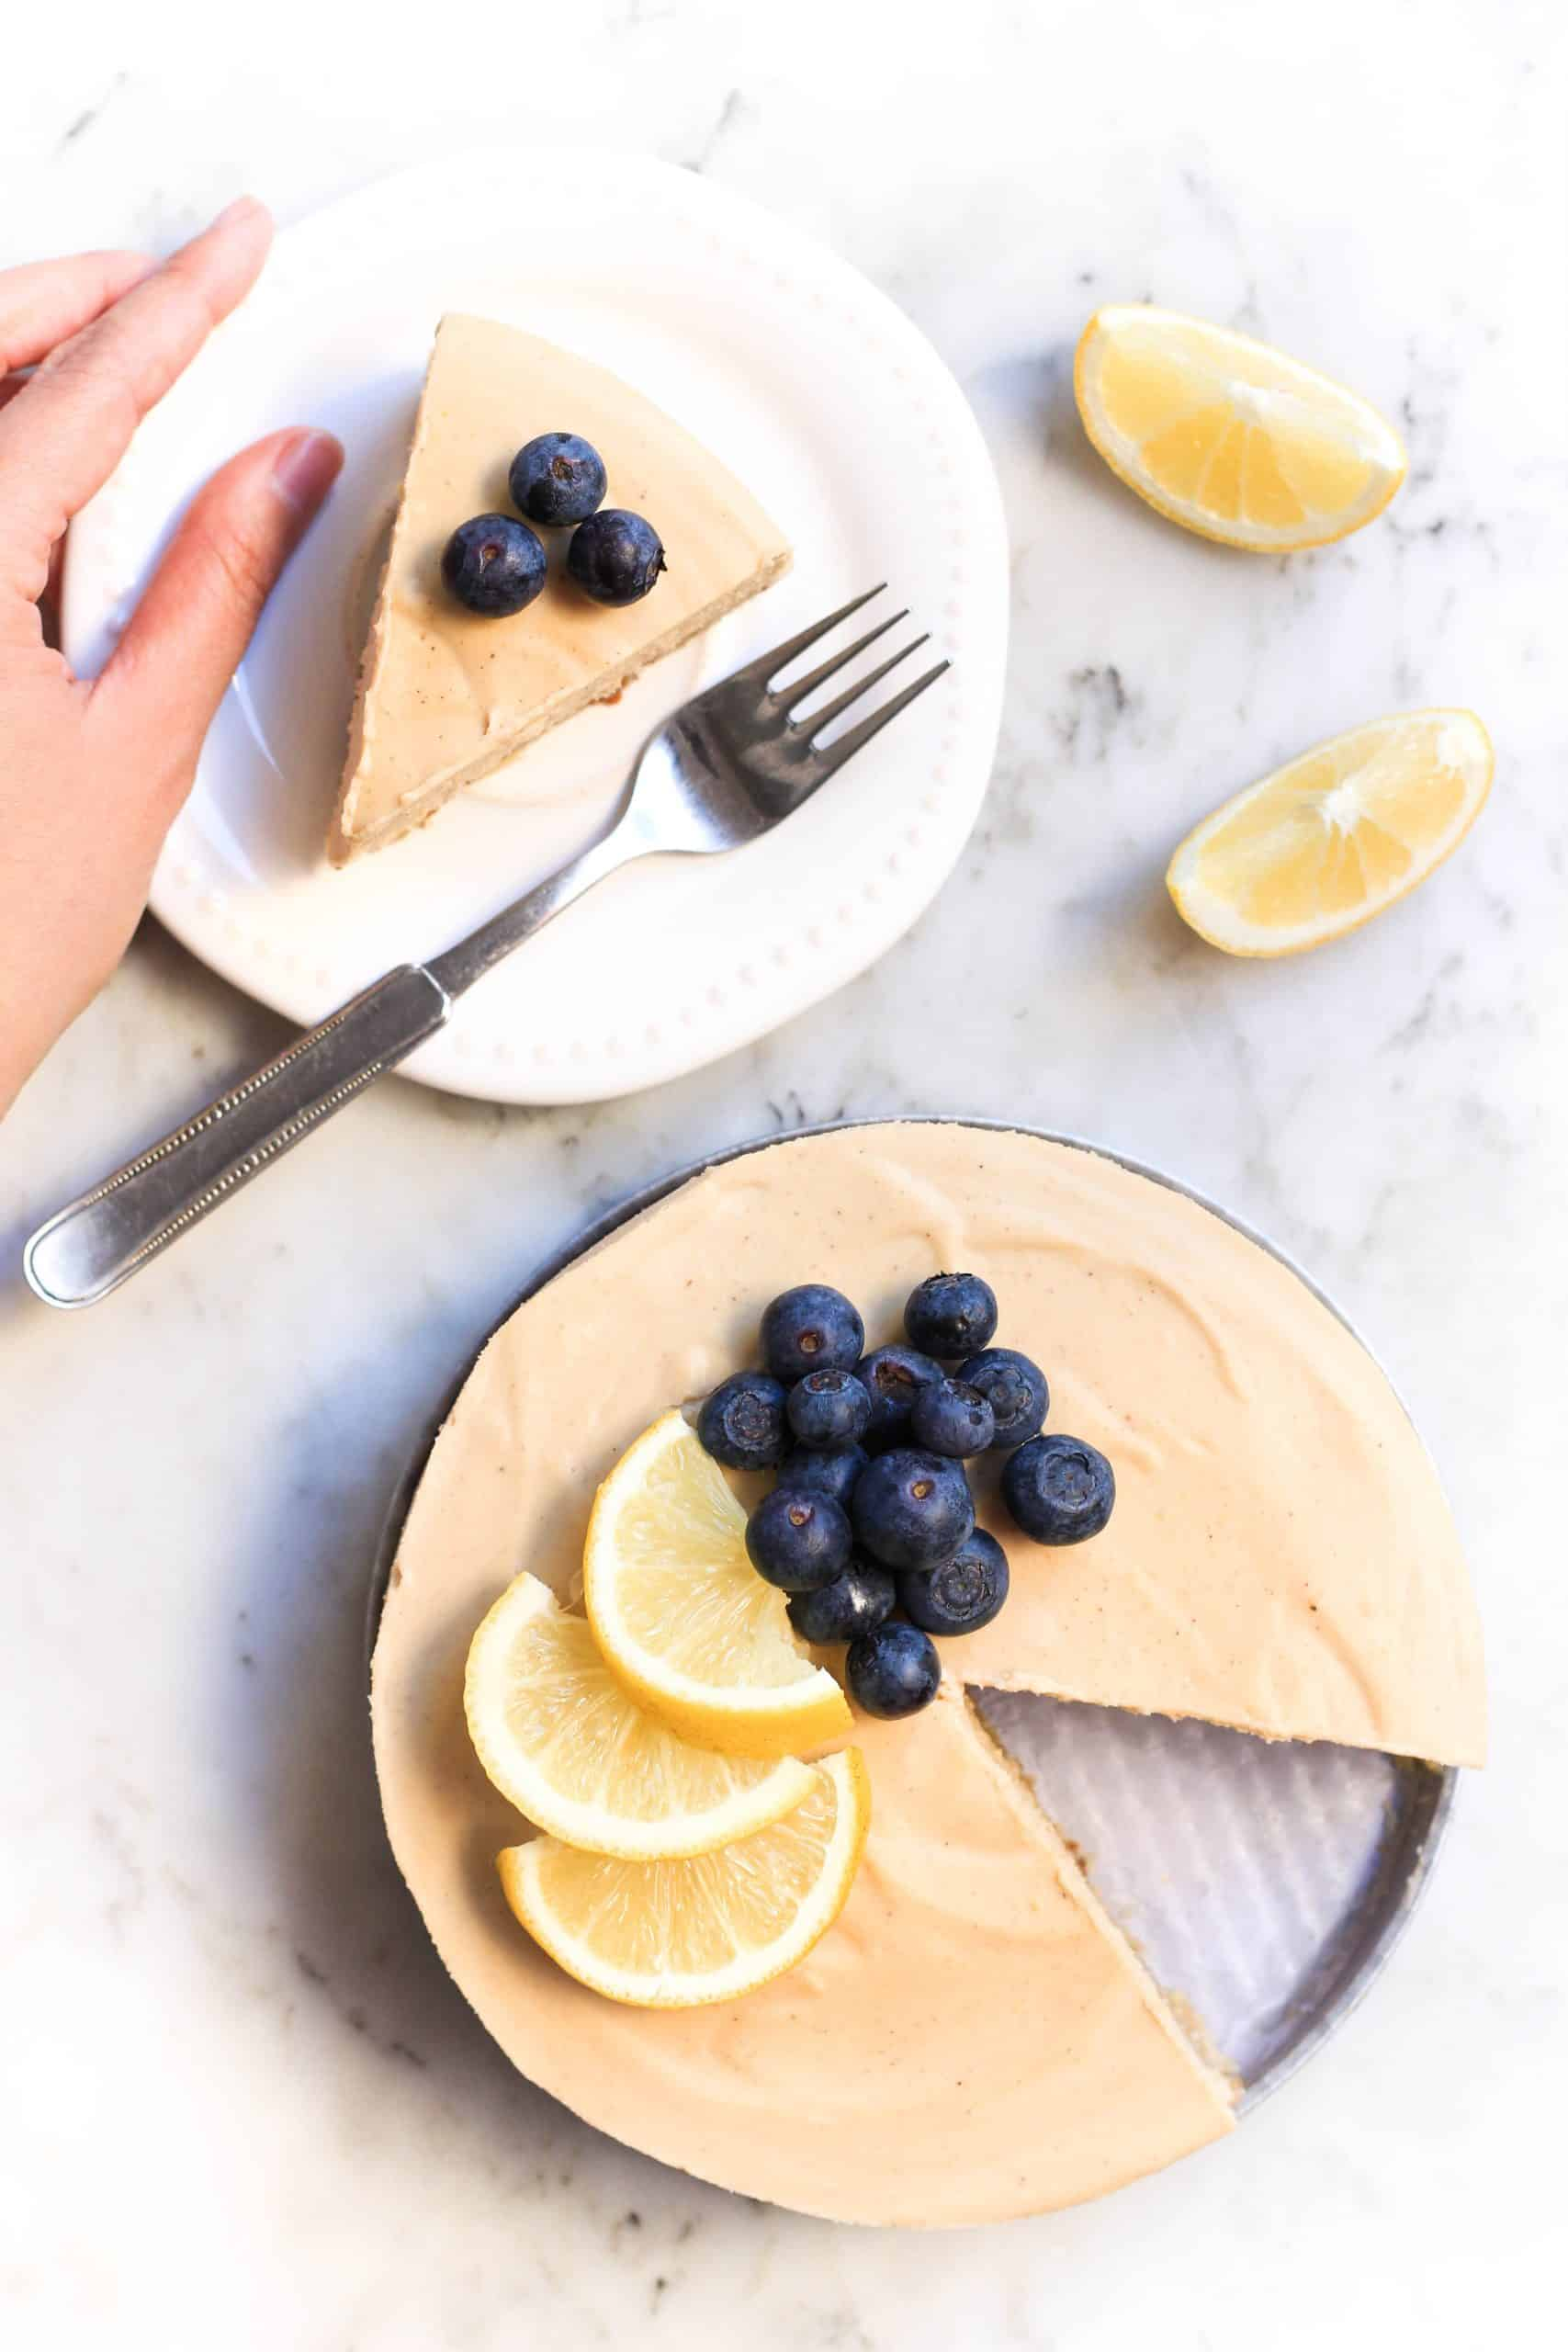 Hand holding a plate with a slice of lemon cheesecake.